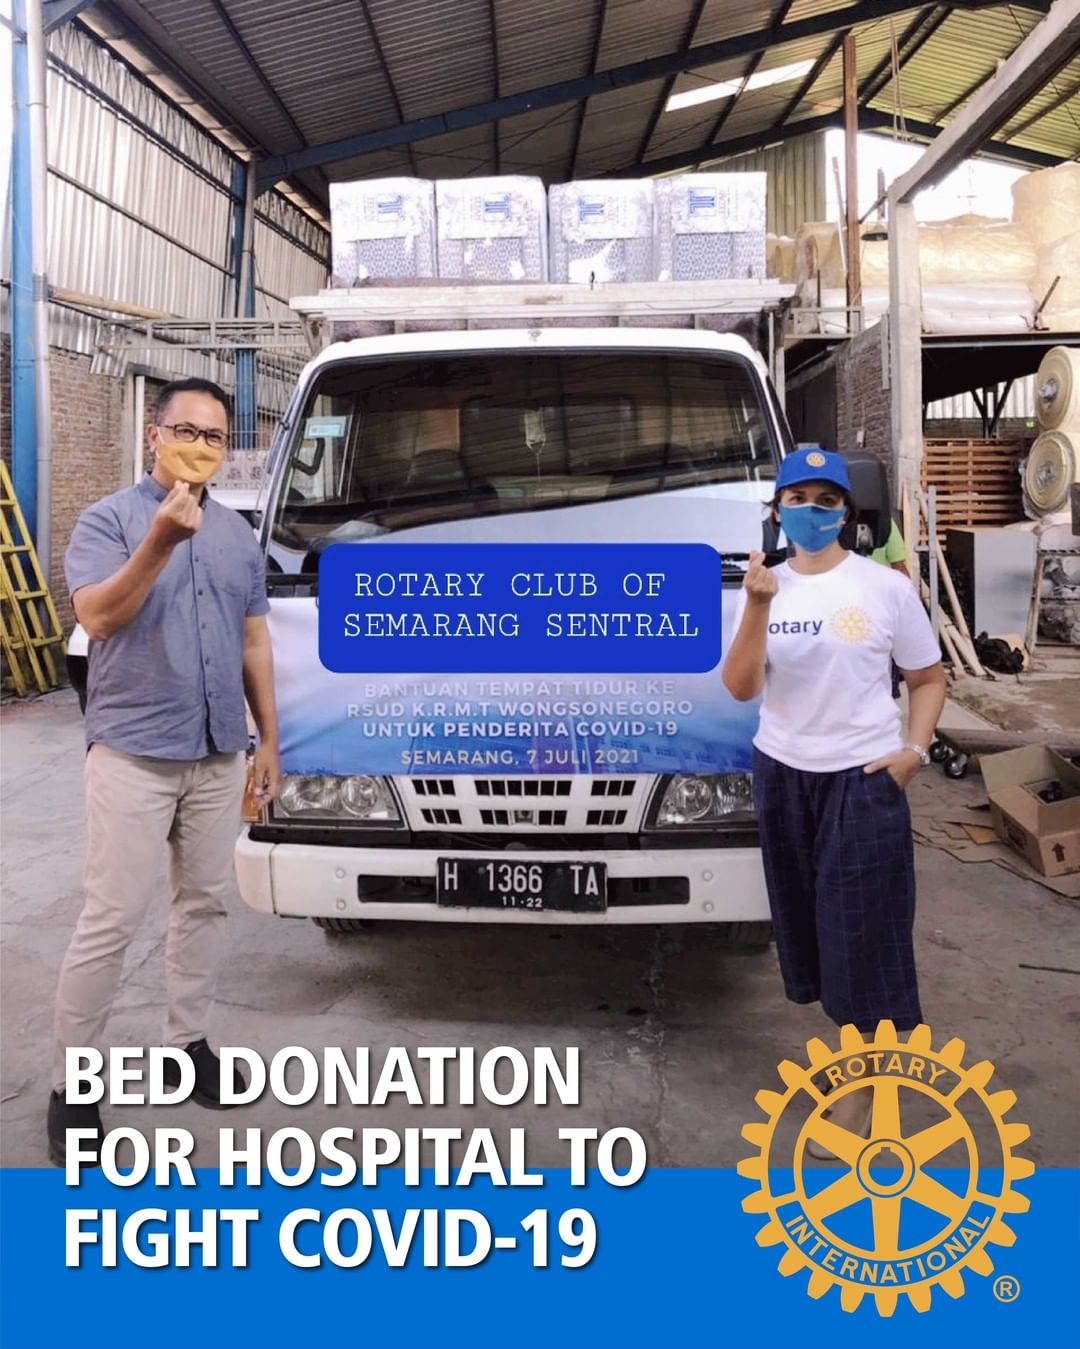 Bed Donation for Hospital to Fight Covid-19